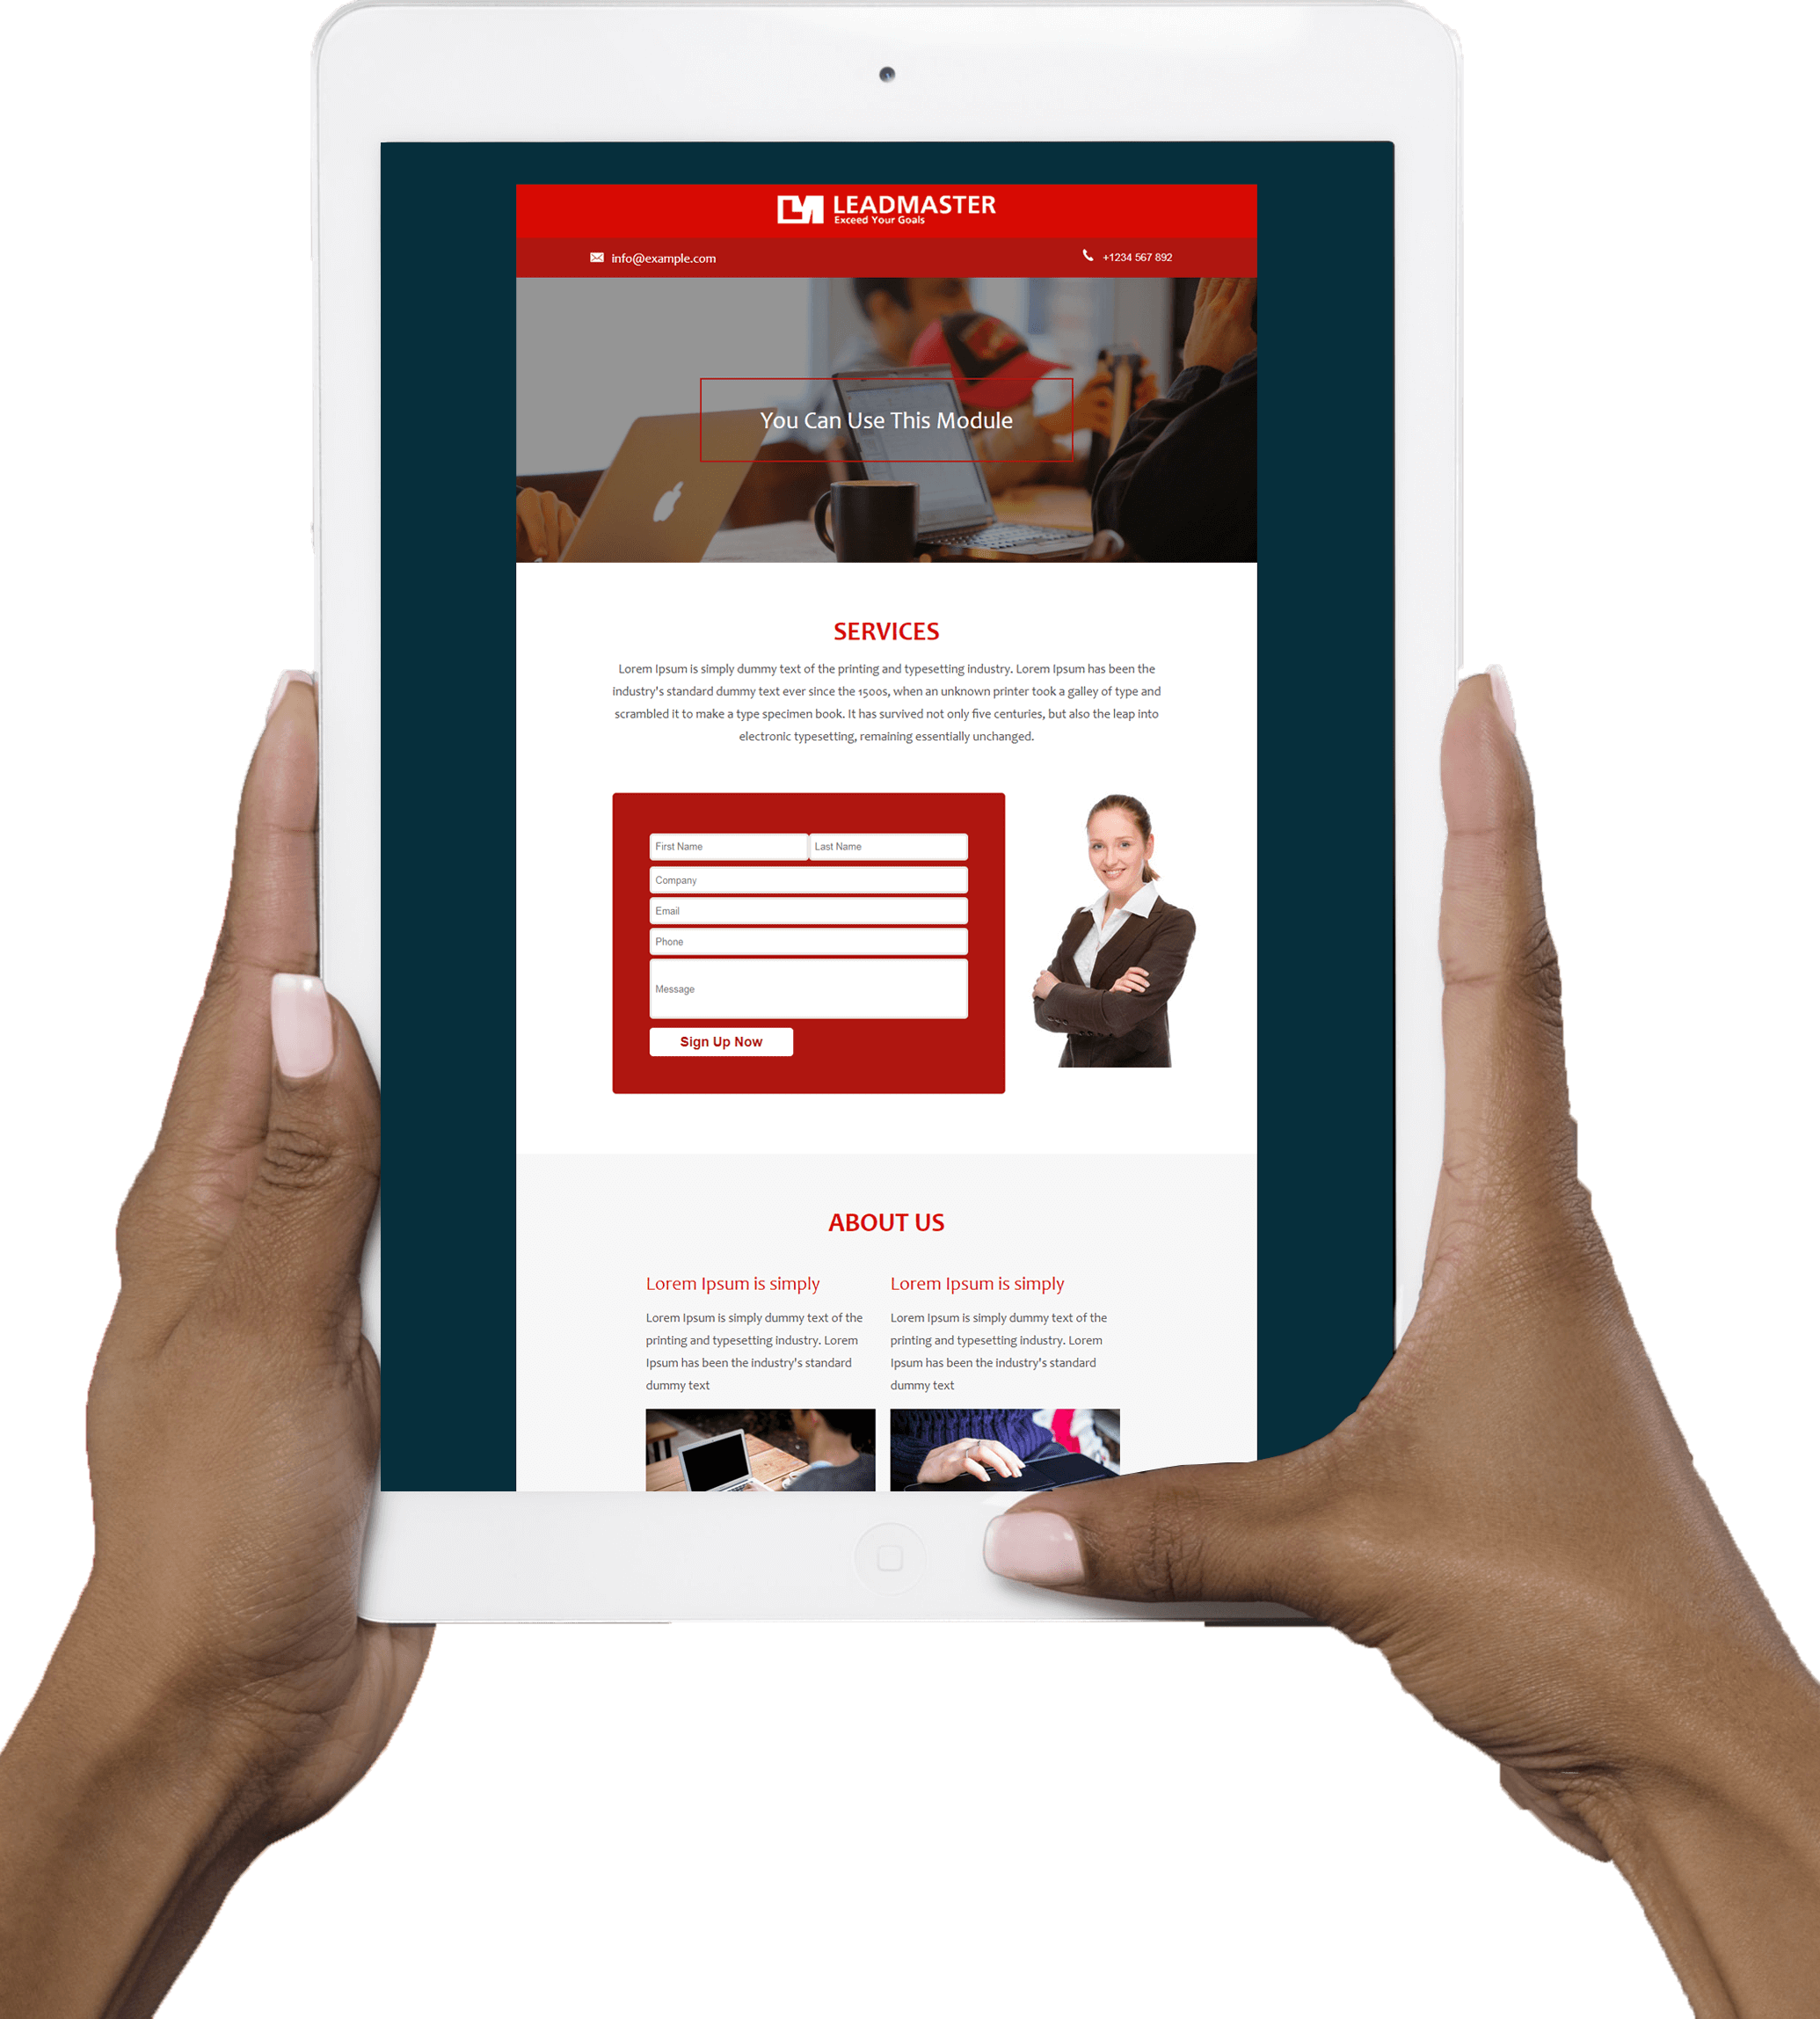 View of a woman's hands holding a white iPad displaying LeadMaster's contact us form on the screen